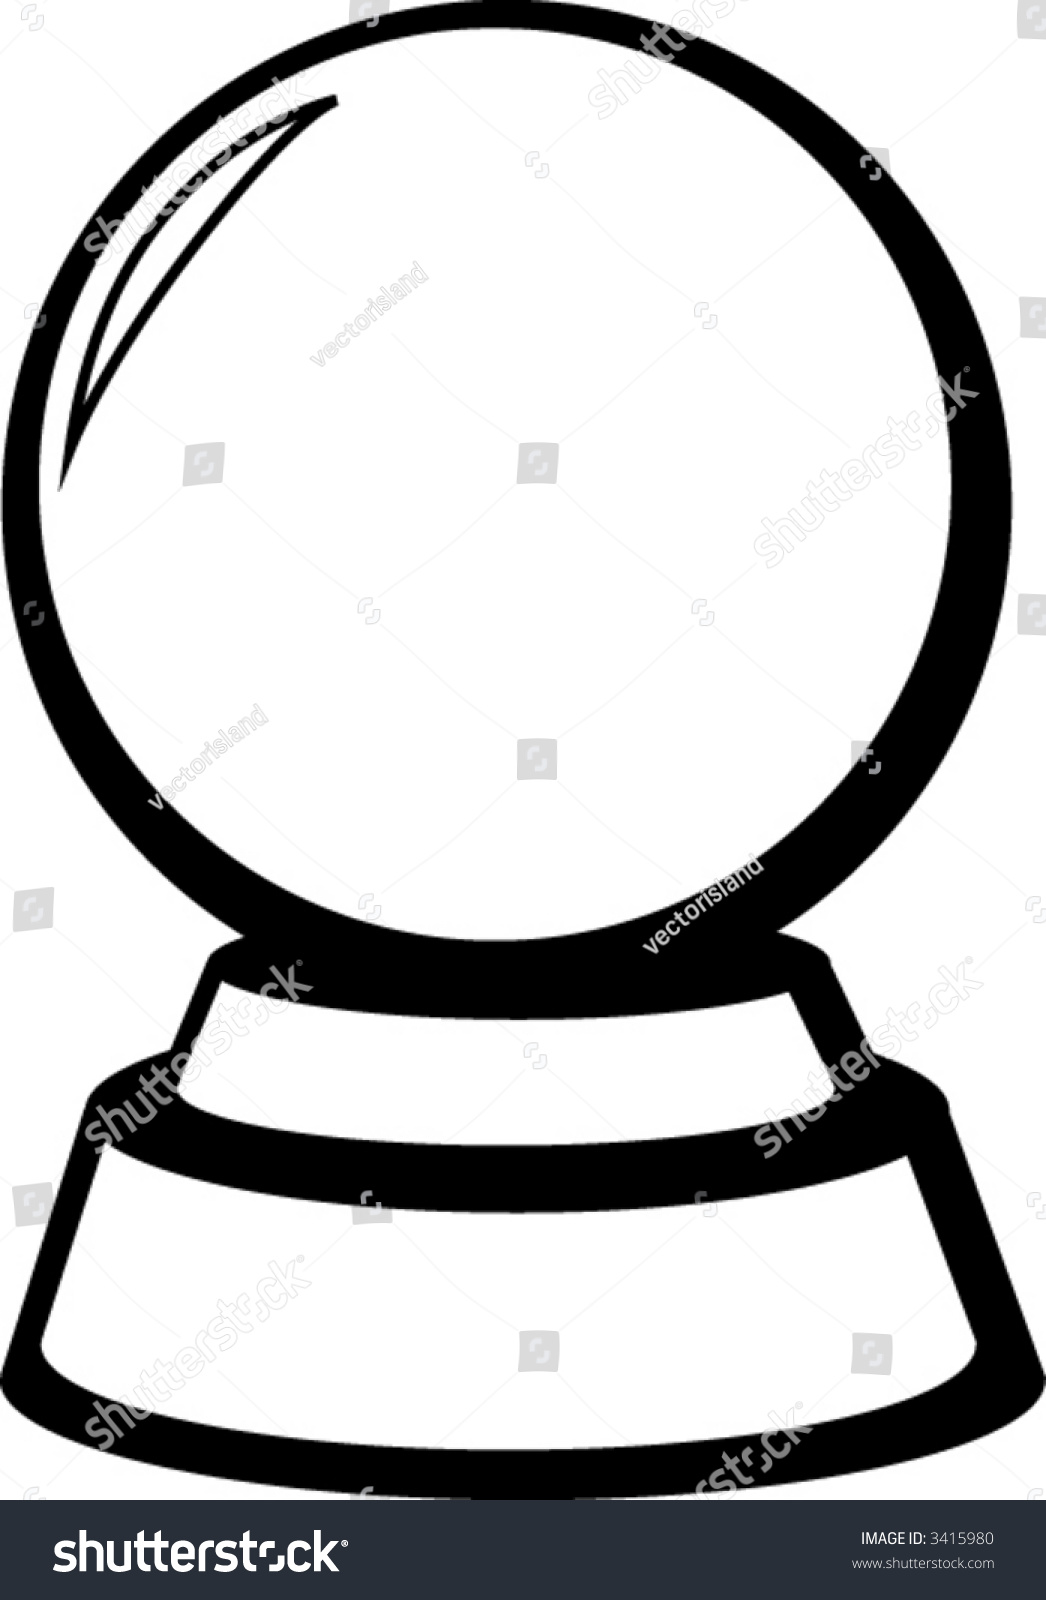 crystal ball stock vector 3415980 shutterstock rh shutterstock com crystal ball clip art free crystal ball clipart images